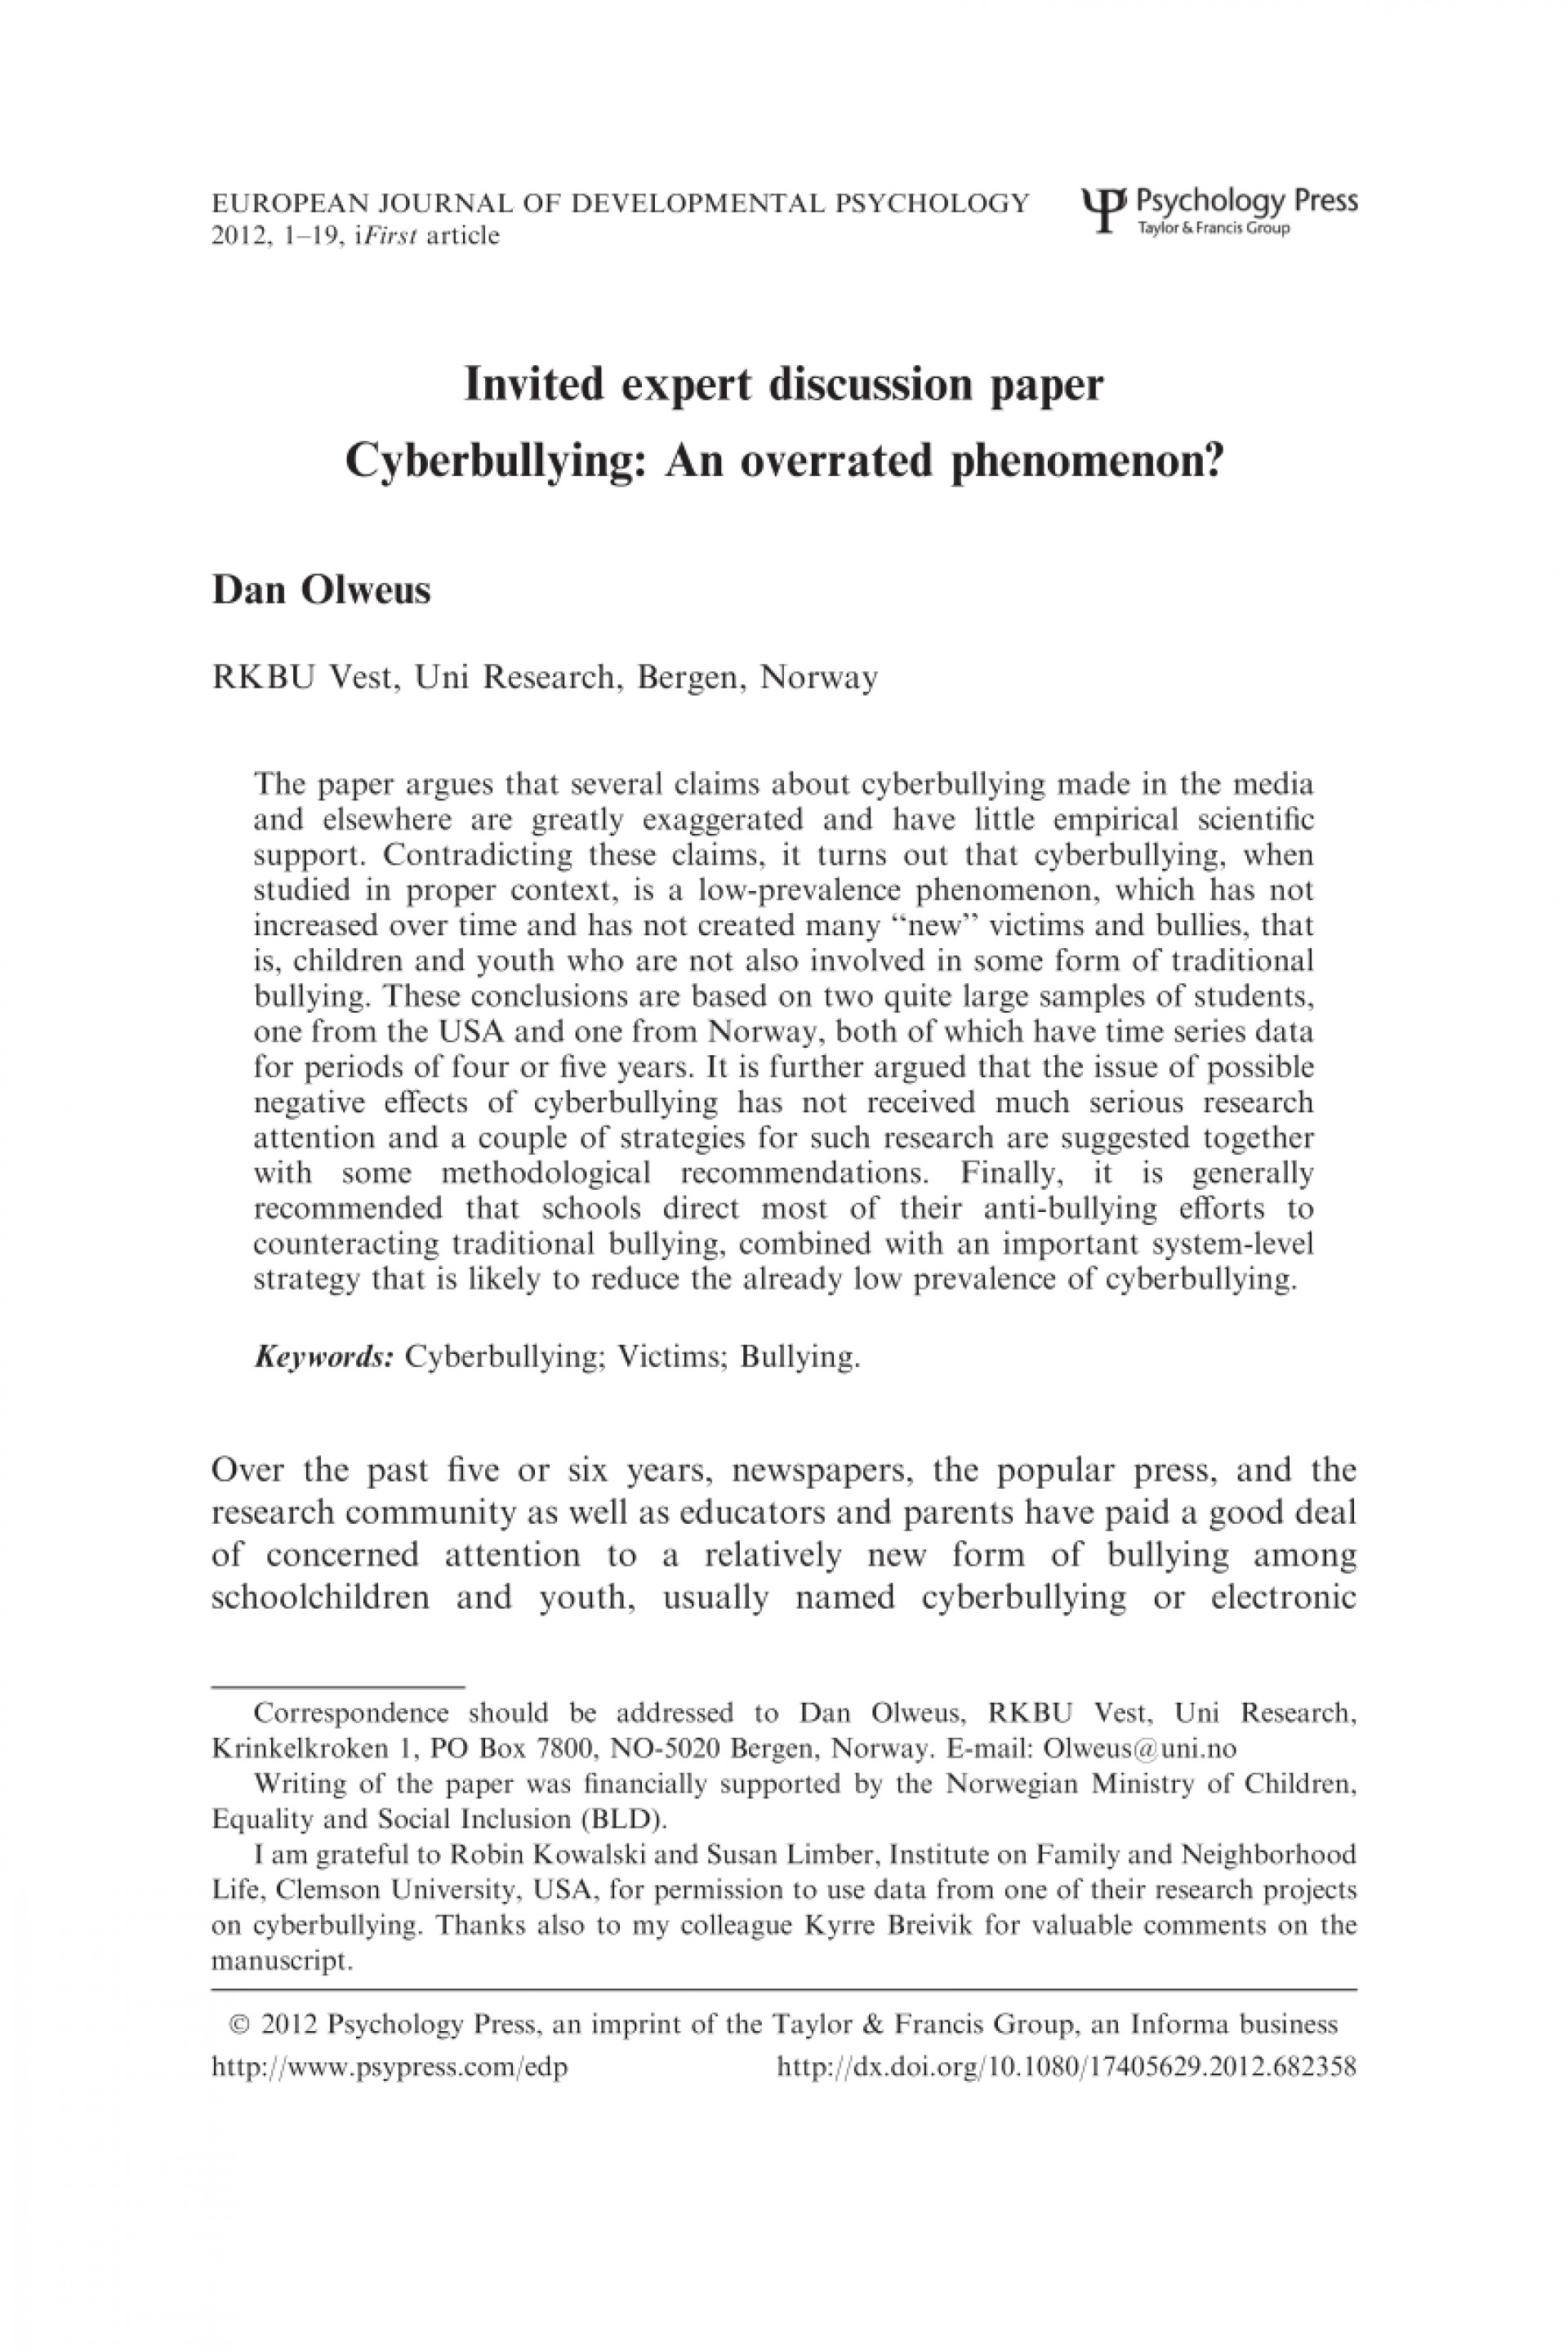 006 Research Paper Largepreview On Cyber Stirring Bullying Cyberbullying Titles Outline 1920